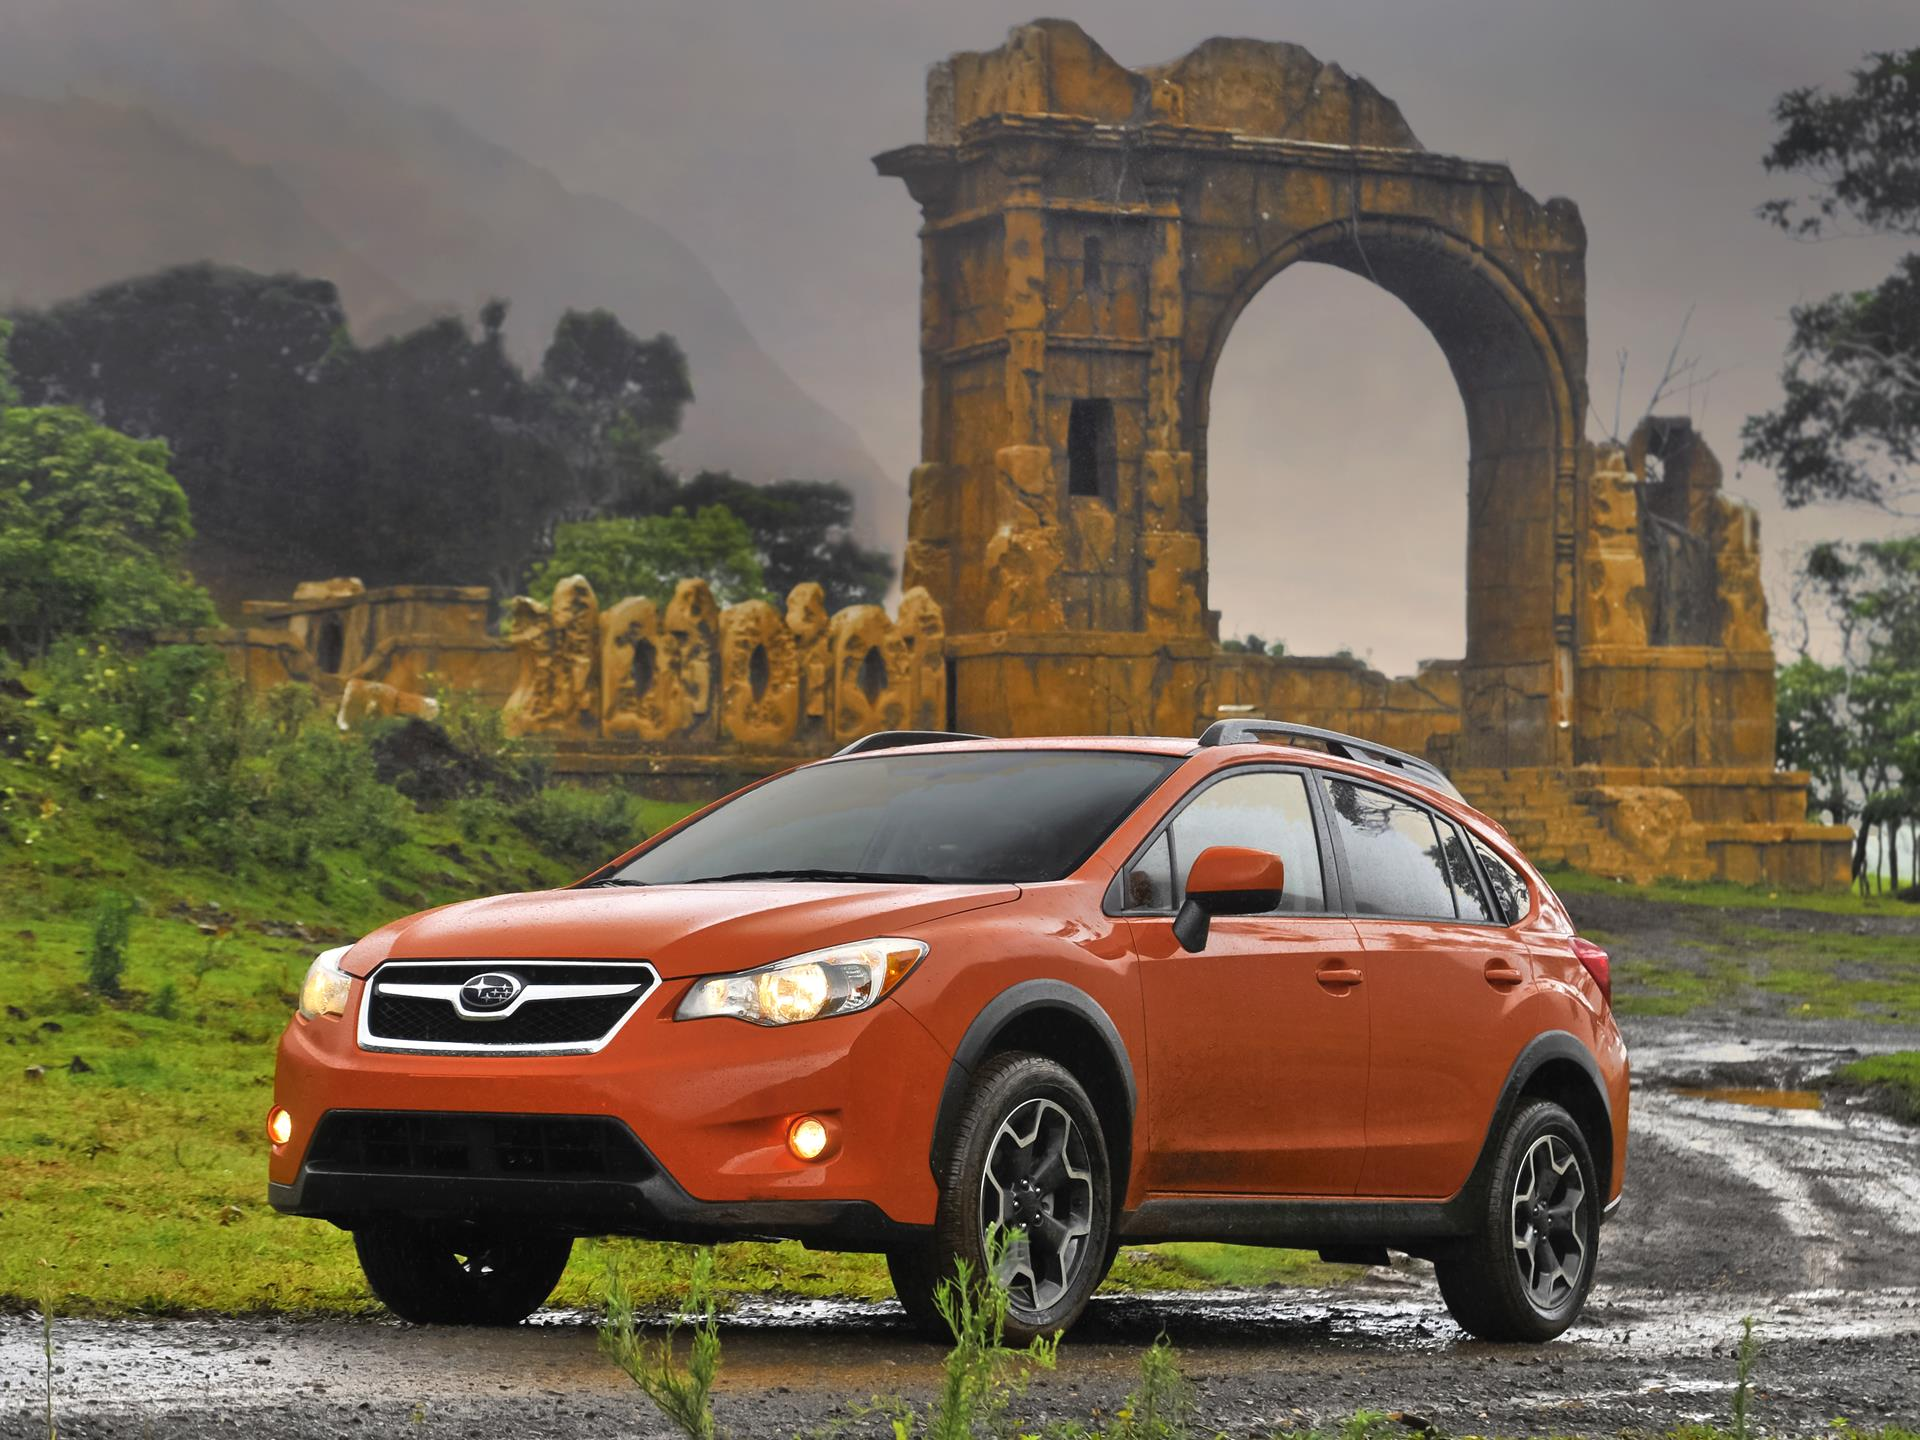 2015 Subaru XV Crosstrek News and Information